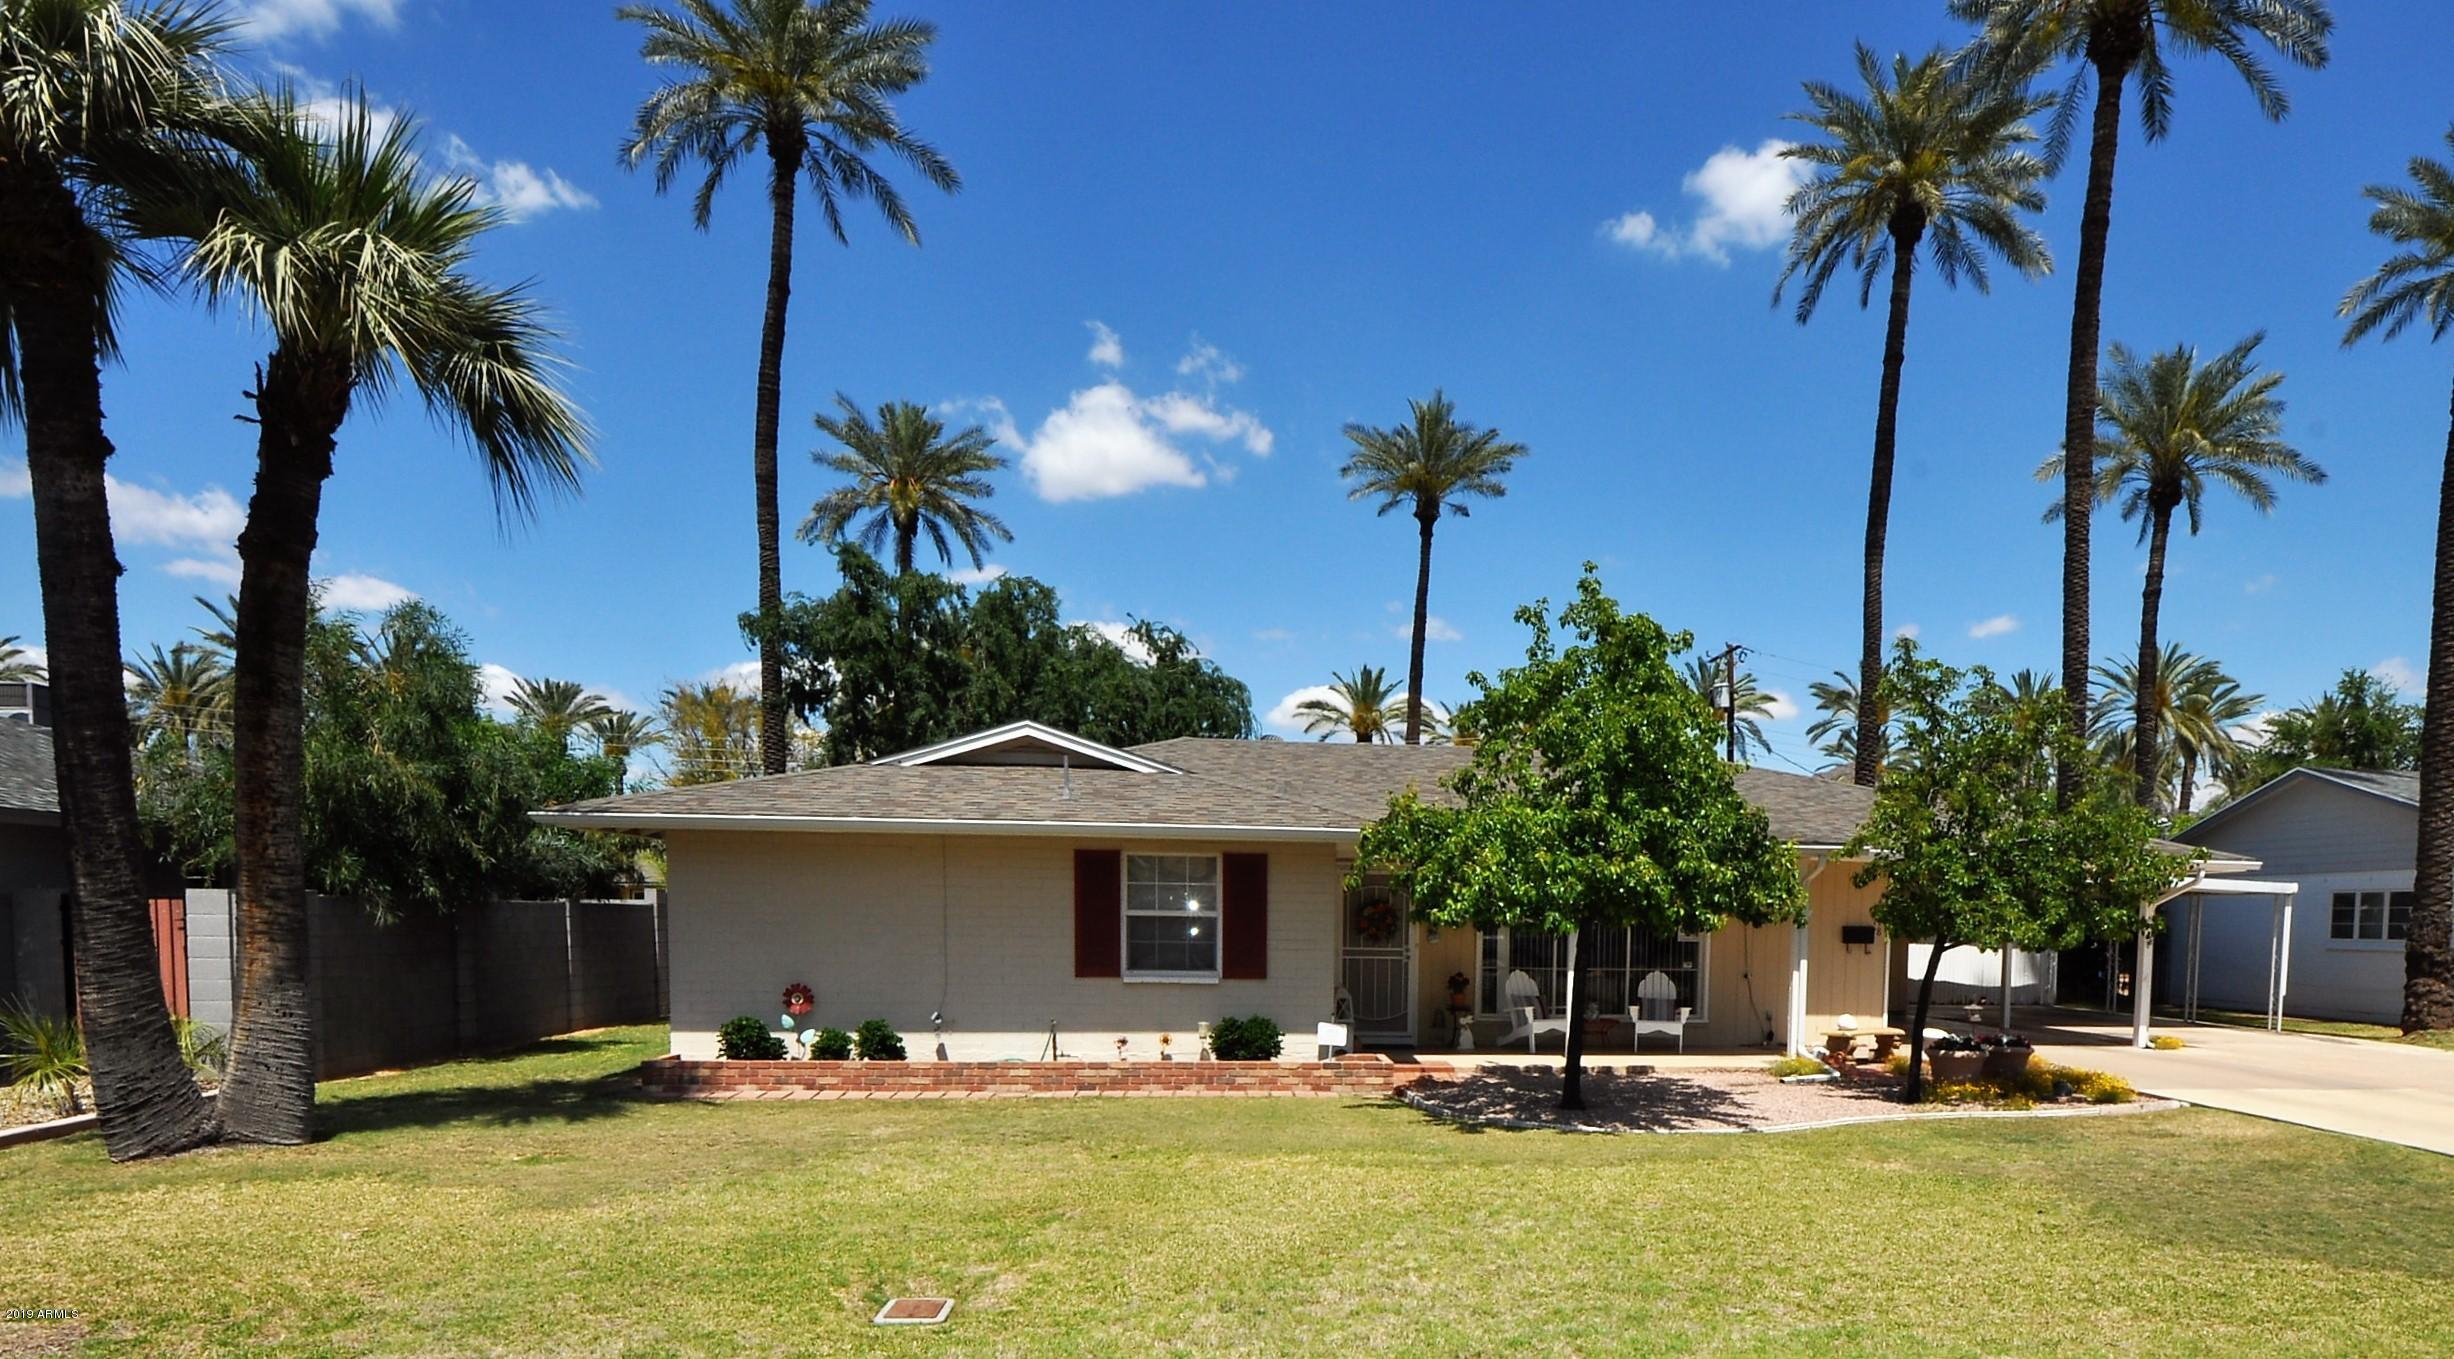 Photo of 4618 E CATALINA Drive, Phoenix, AZ 85018